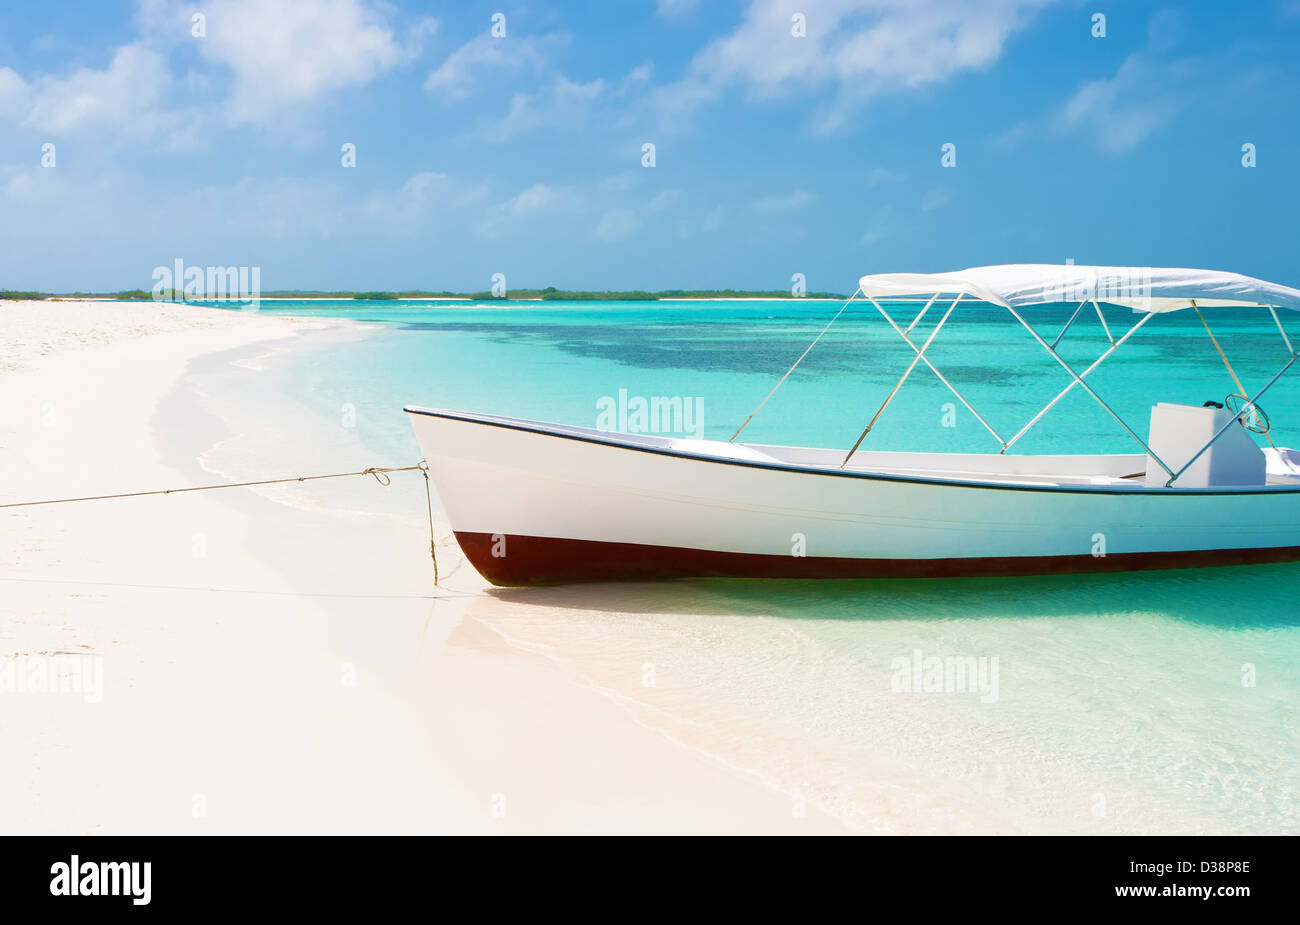 Boat at the tropical beach of Crasqui island, Los Roques, Venezuela - Stock Image